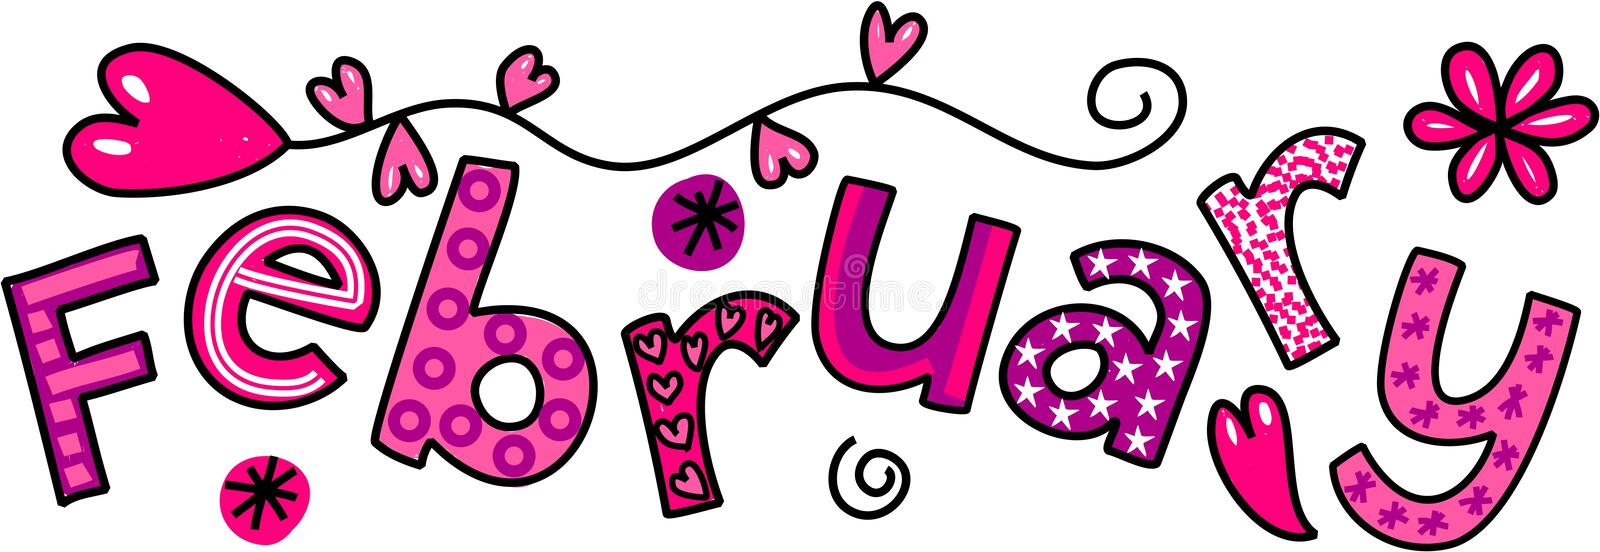 February Clip Art. Whimsical cartoon text doodle for the month of February stock illustration